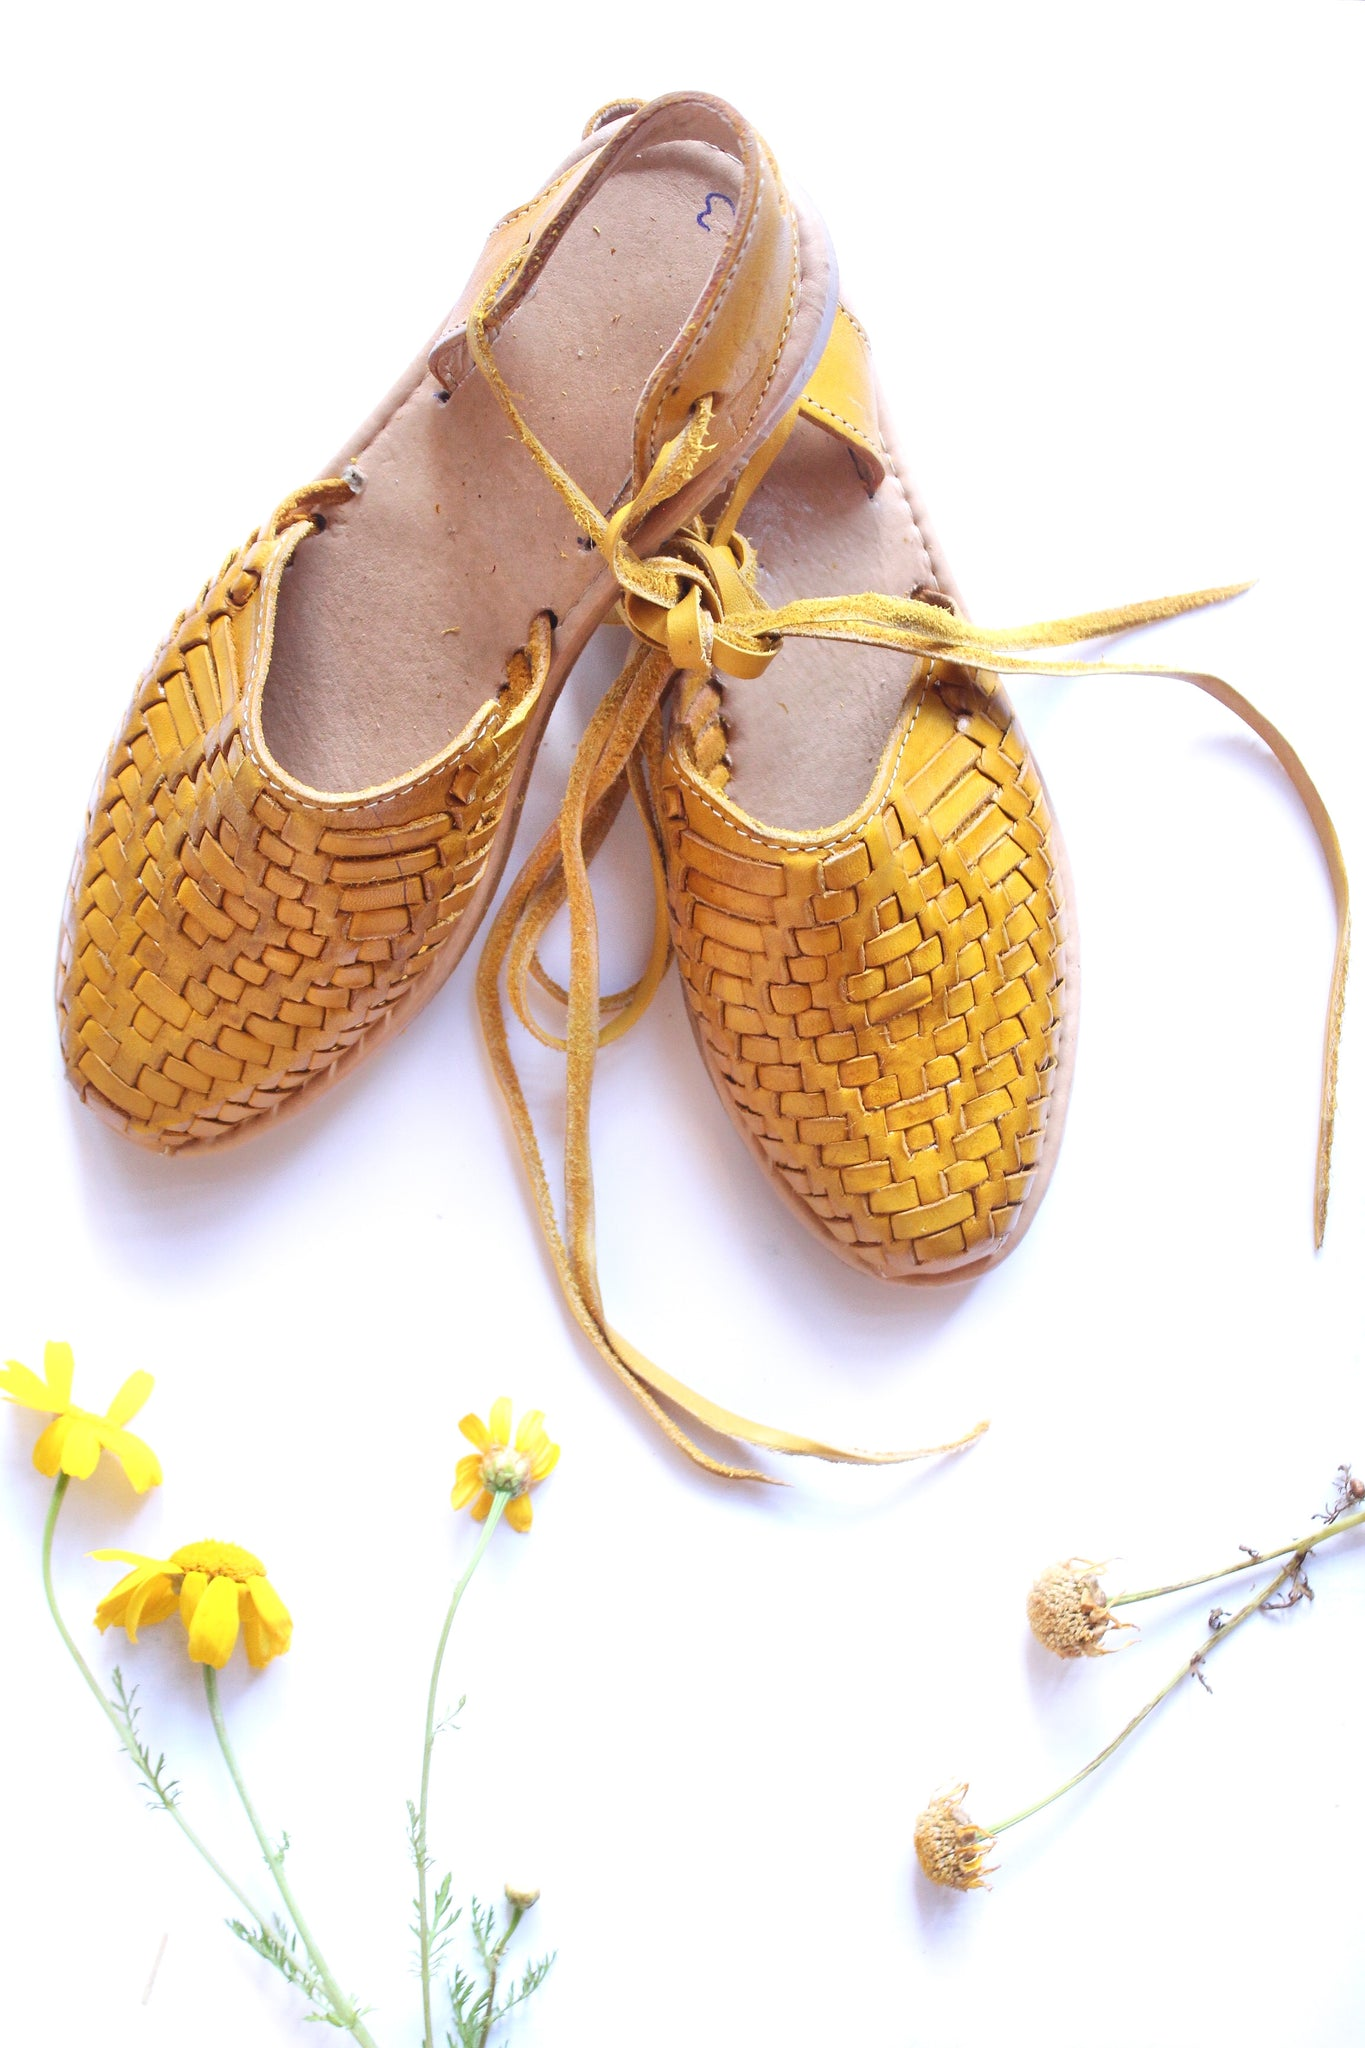 Sunflower Power Huarache Sandals - Wild Hearts & Halos